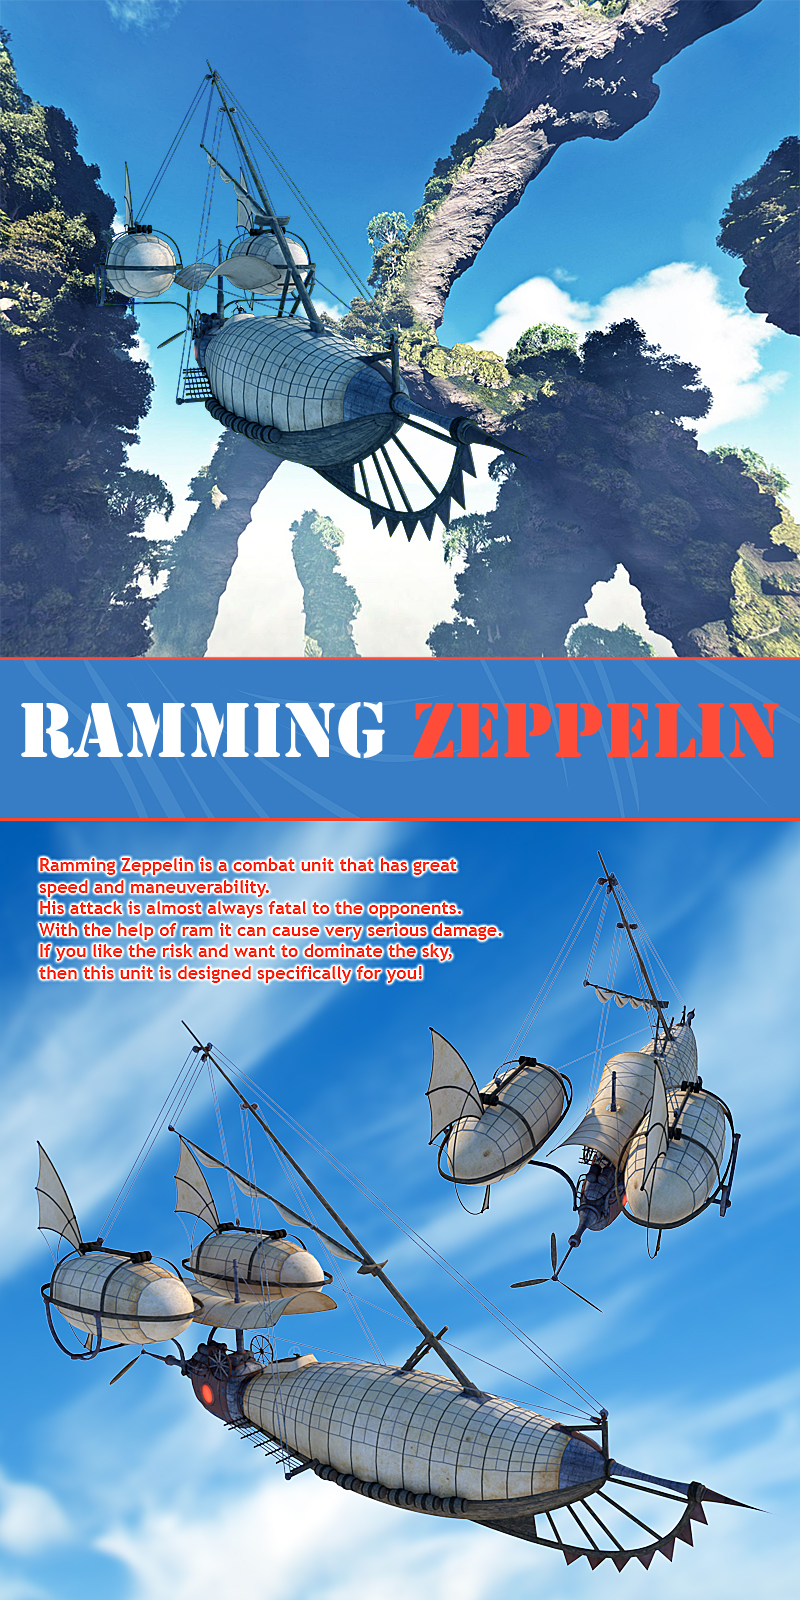 Ramming Zeppelin